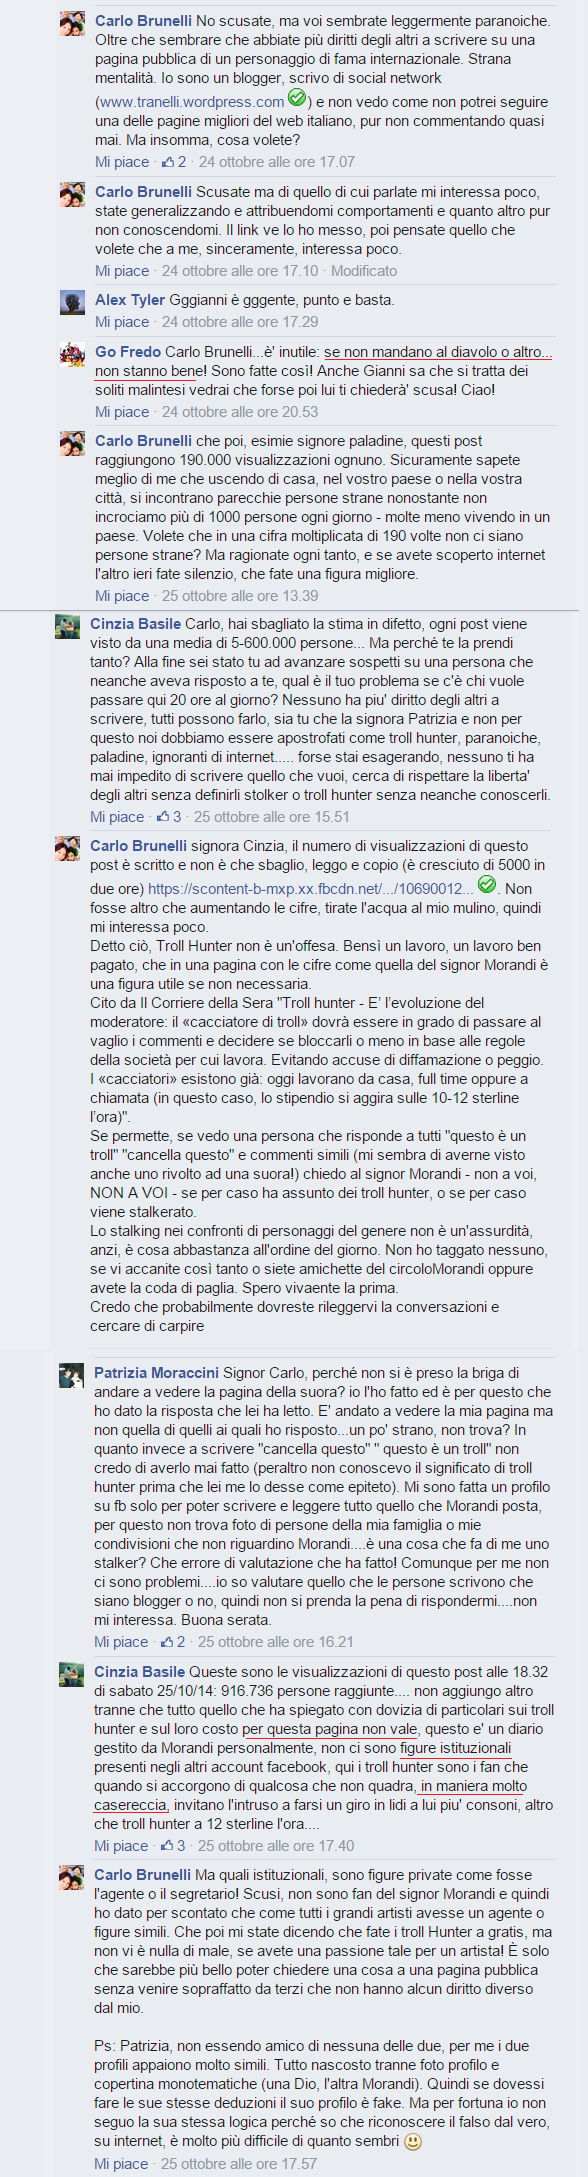 Gianni Morandi post mio2